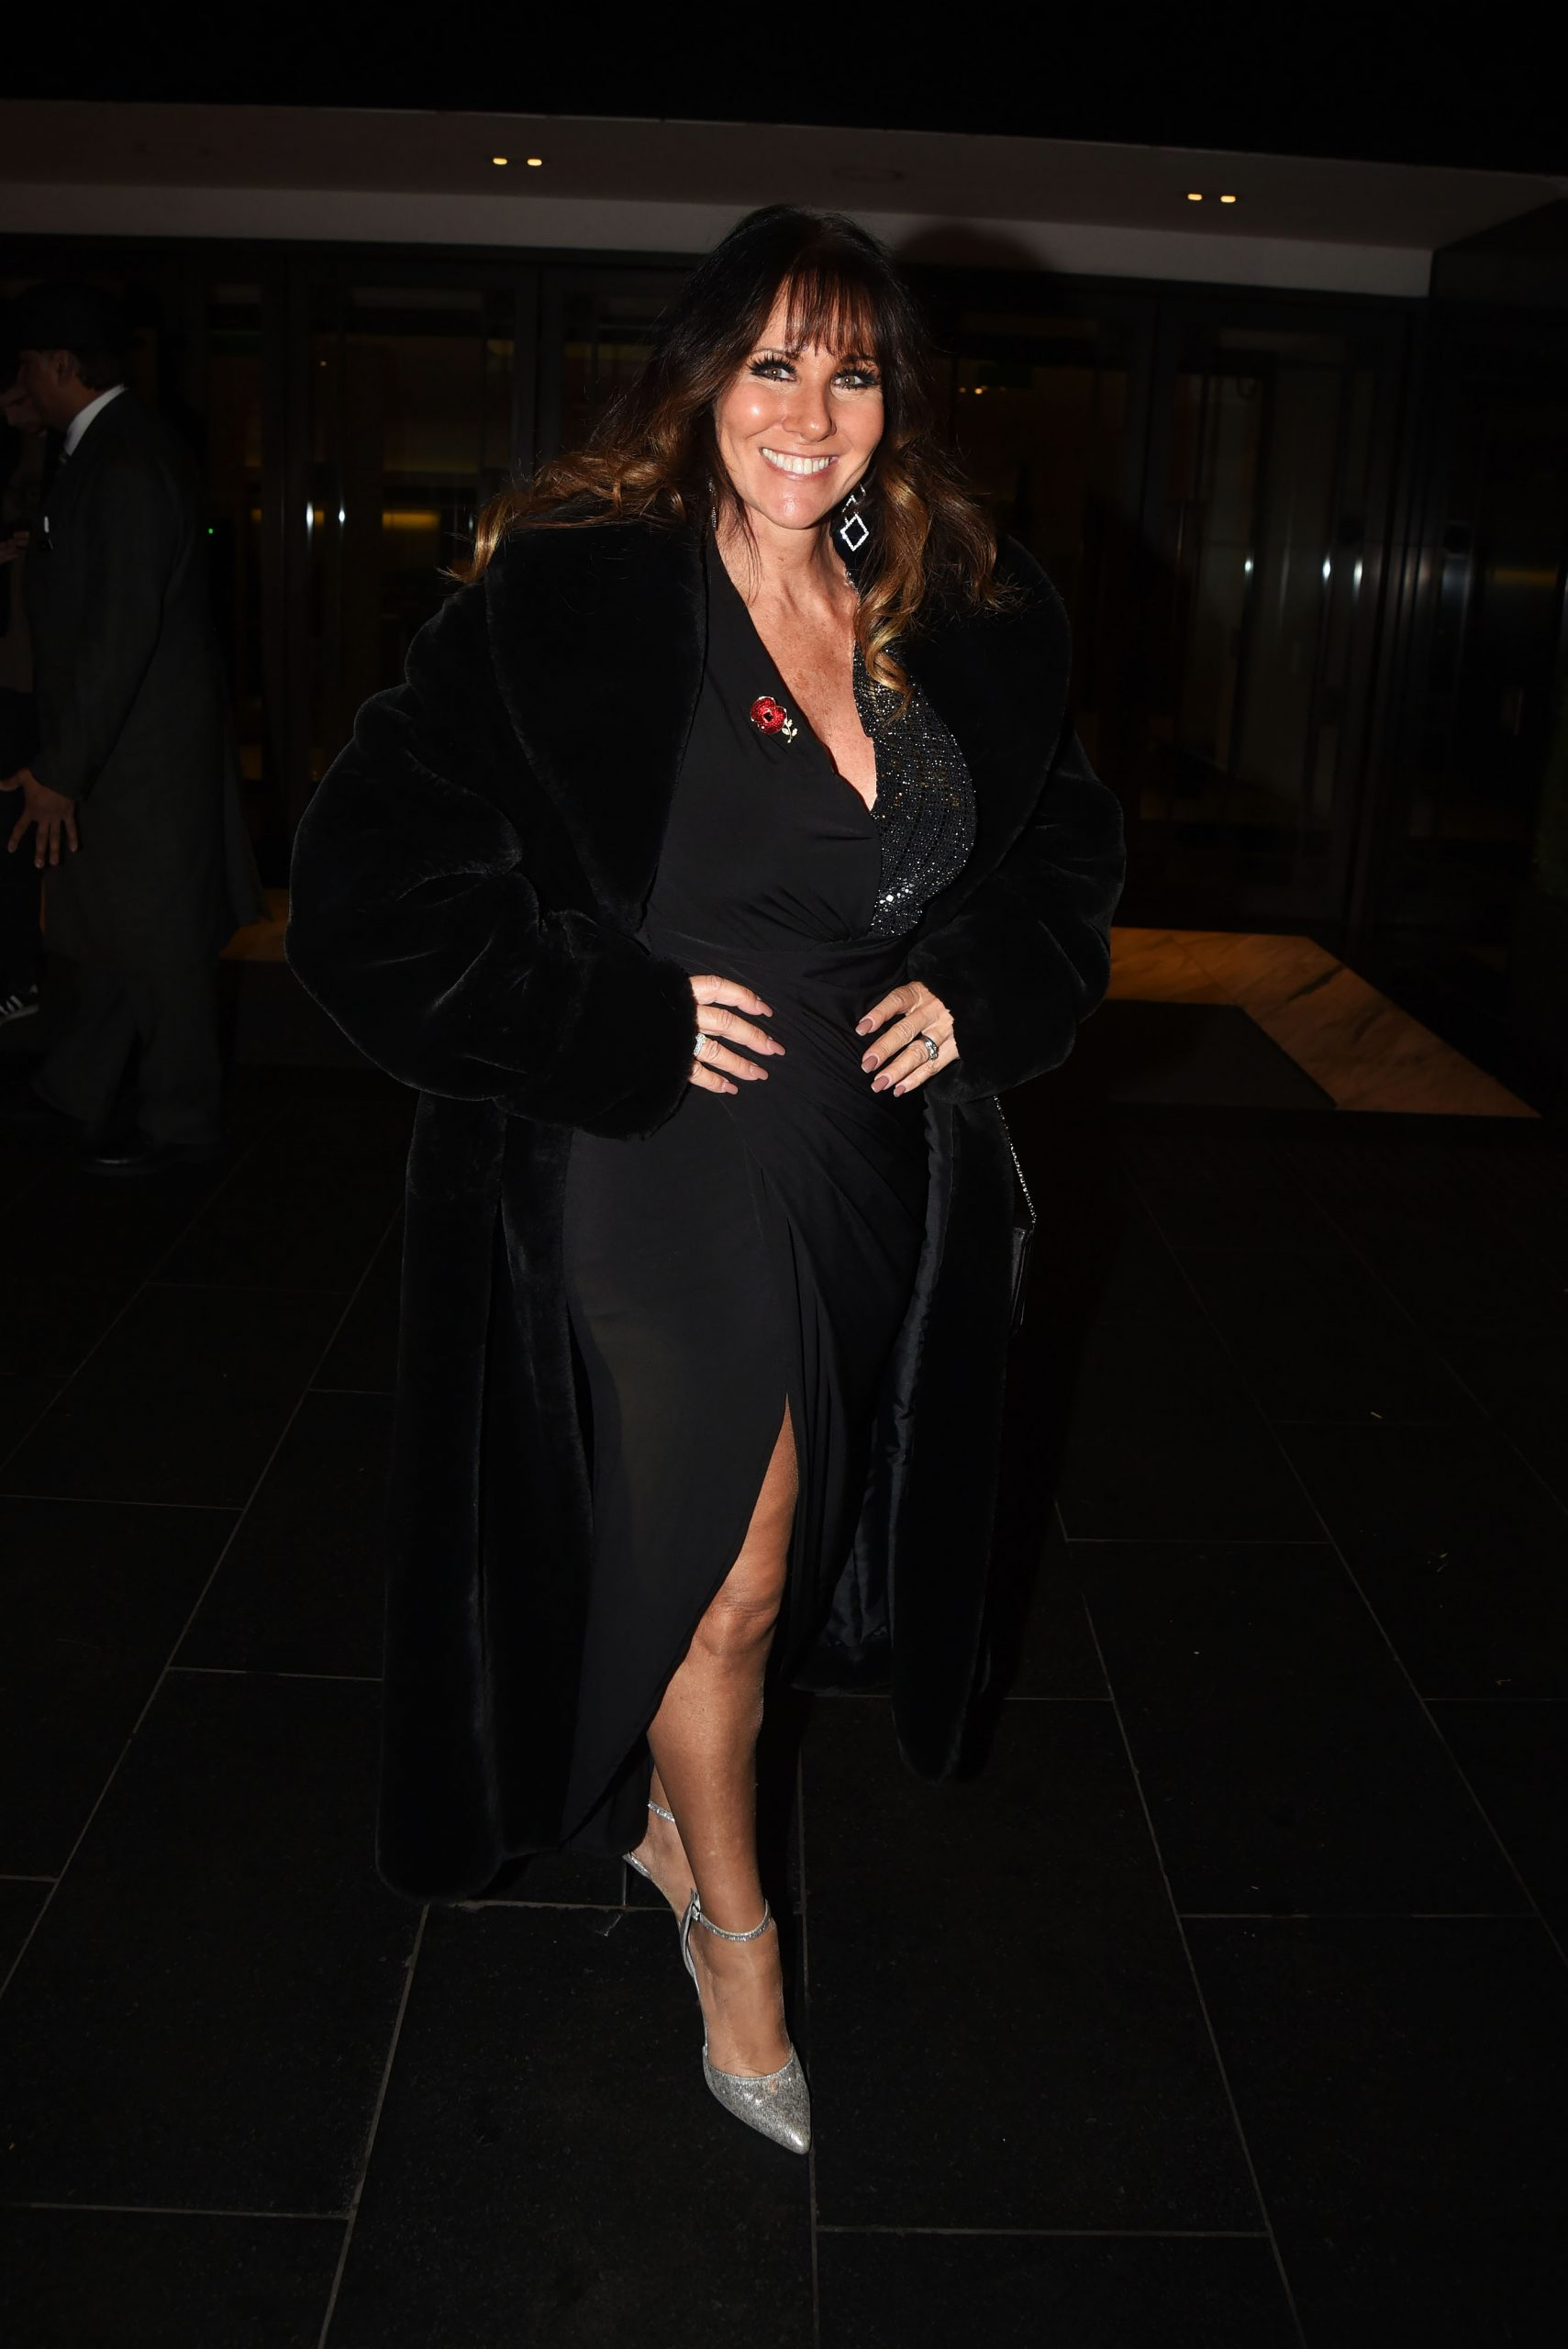 VIPs attend the London Lifestyle Awards 2019 Pictured: Linda Lusardi Ref: SPL5126488 051119 NON-EXCLUSIVE Picture by: Alucard / SplashNews.com Splash News and Pictures Los Angeles: 310-821-2666 New York: 212-619-2666 London: +44 (0)20 7644 7656 Berlin: +49 175 3764 166 photodesk@splashnews.com World Rights